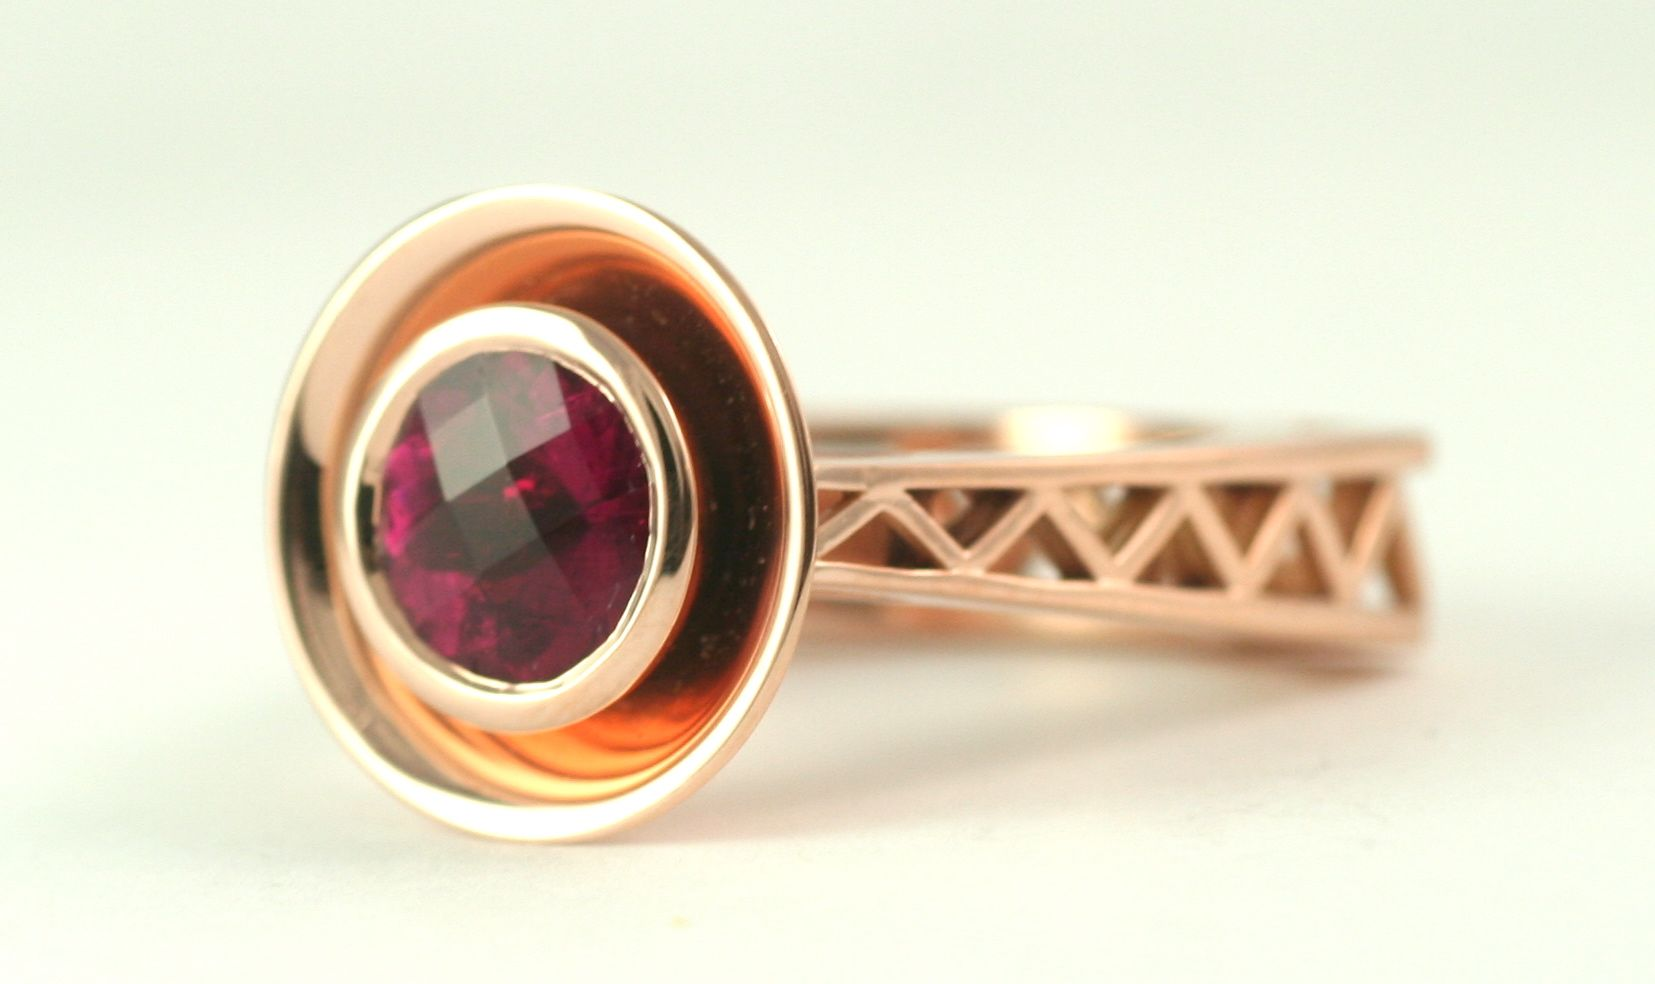 14-k-rose-gold-ring-with-rubellite-tourmaline-a